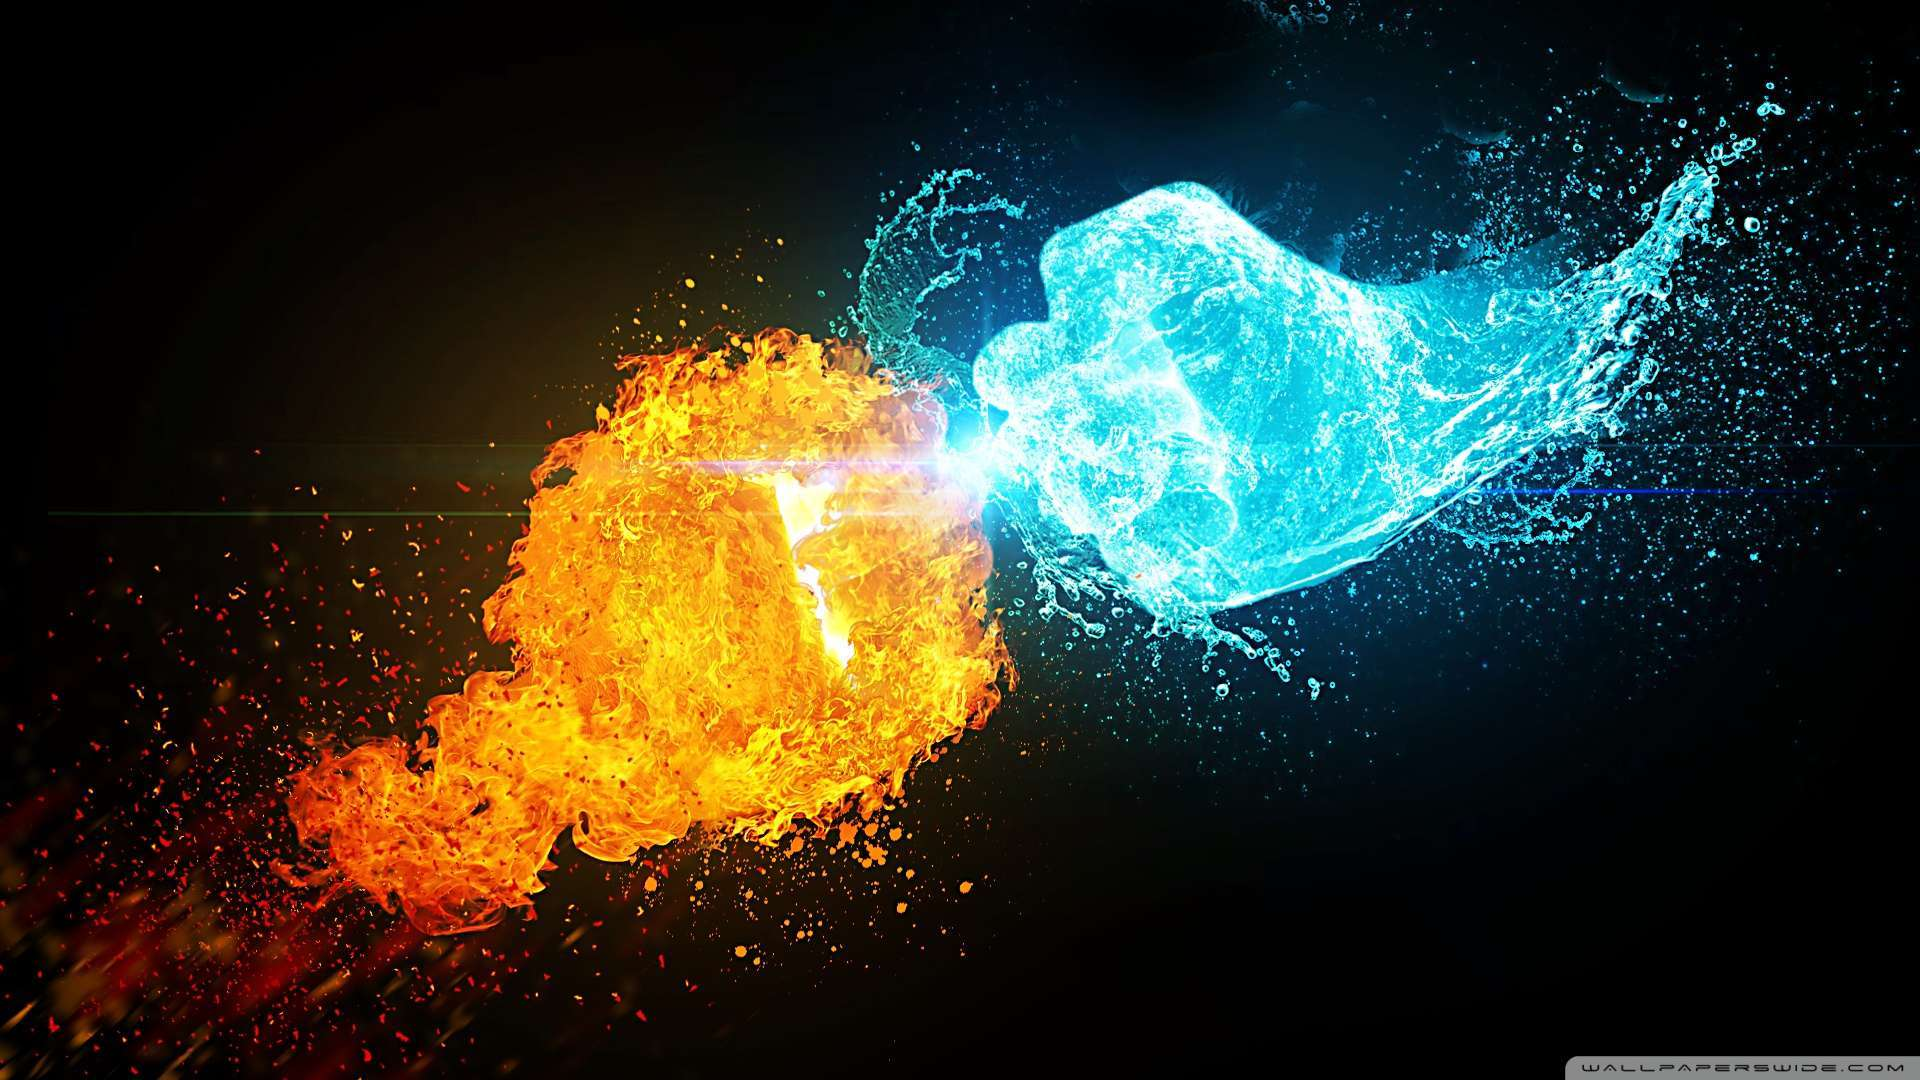 Images of Fire And Ice | 1920x1080